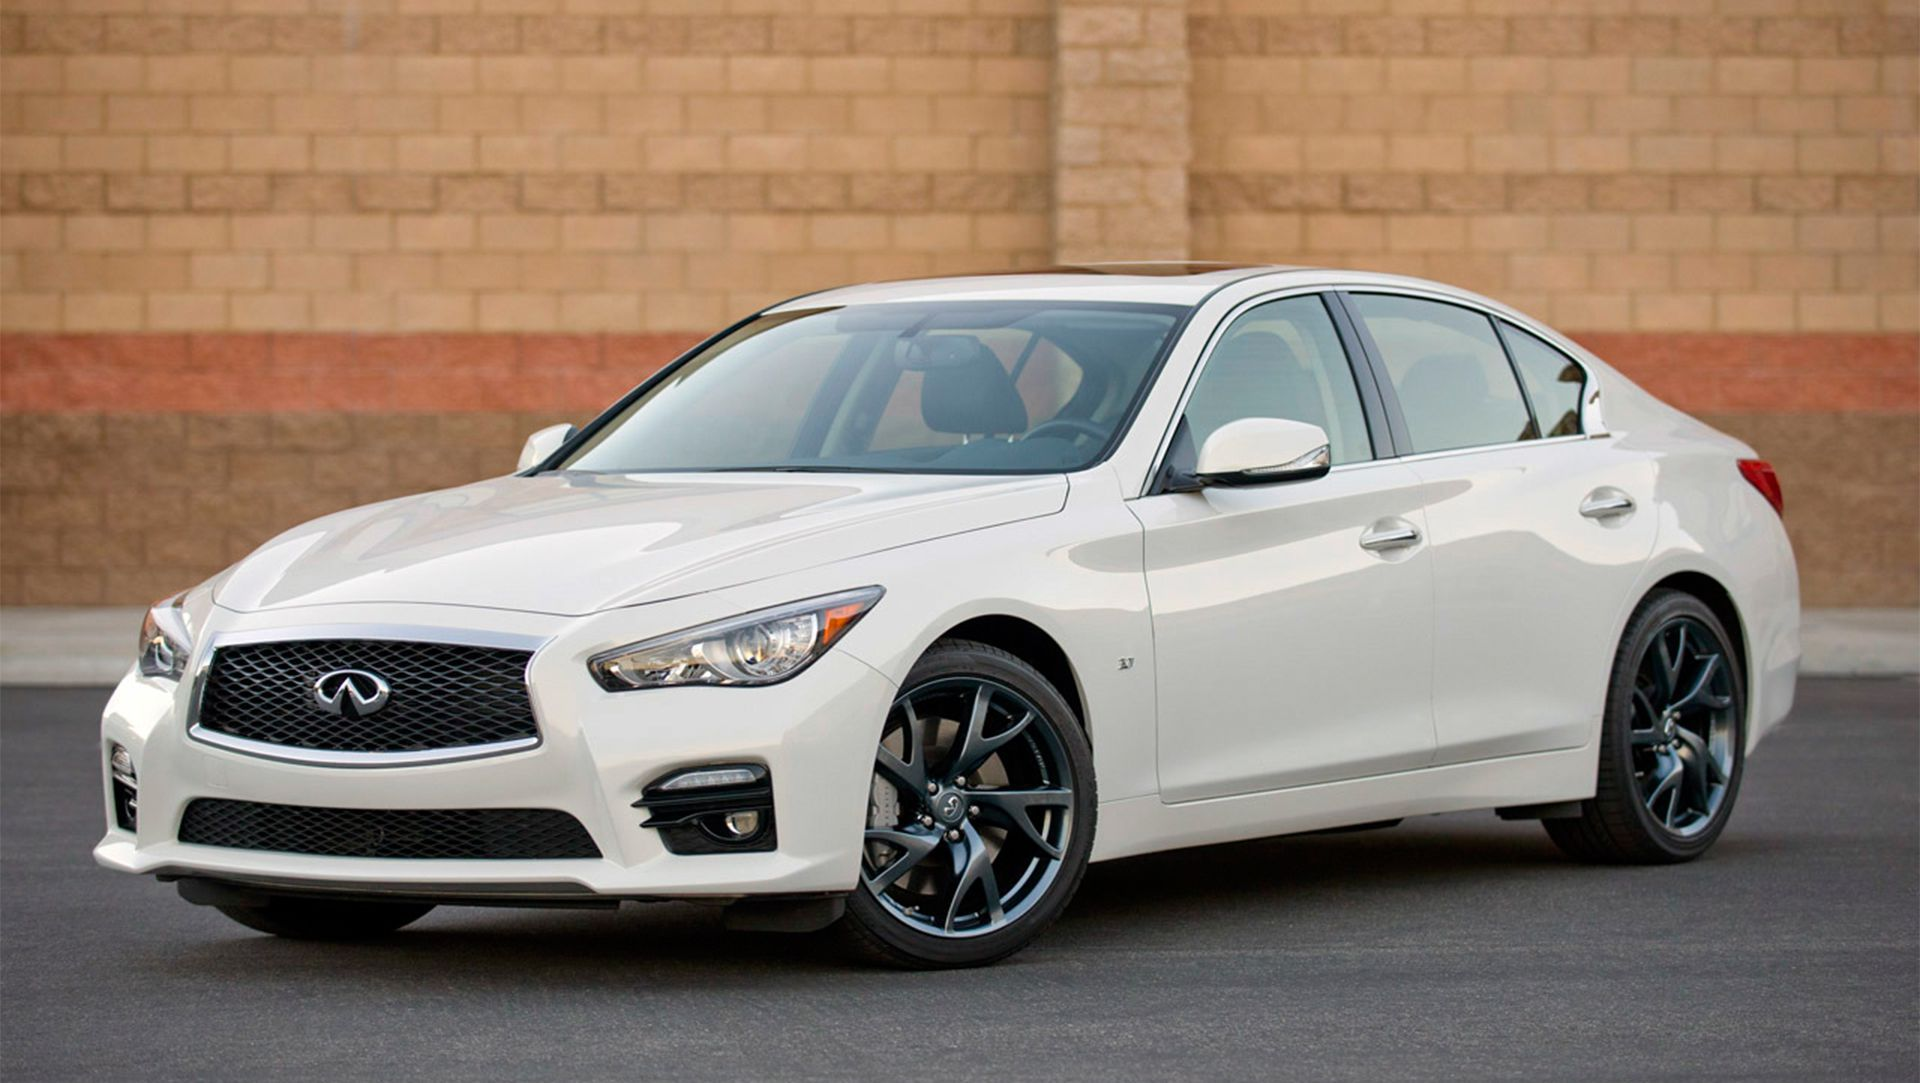 Infiniti Today Announced Pricing For The 2016 Q50